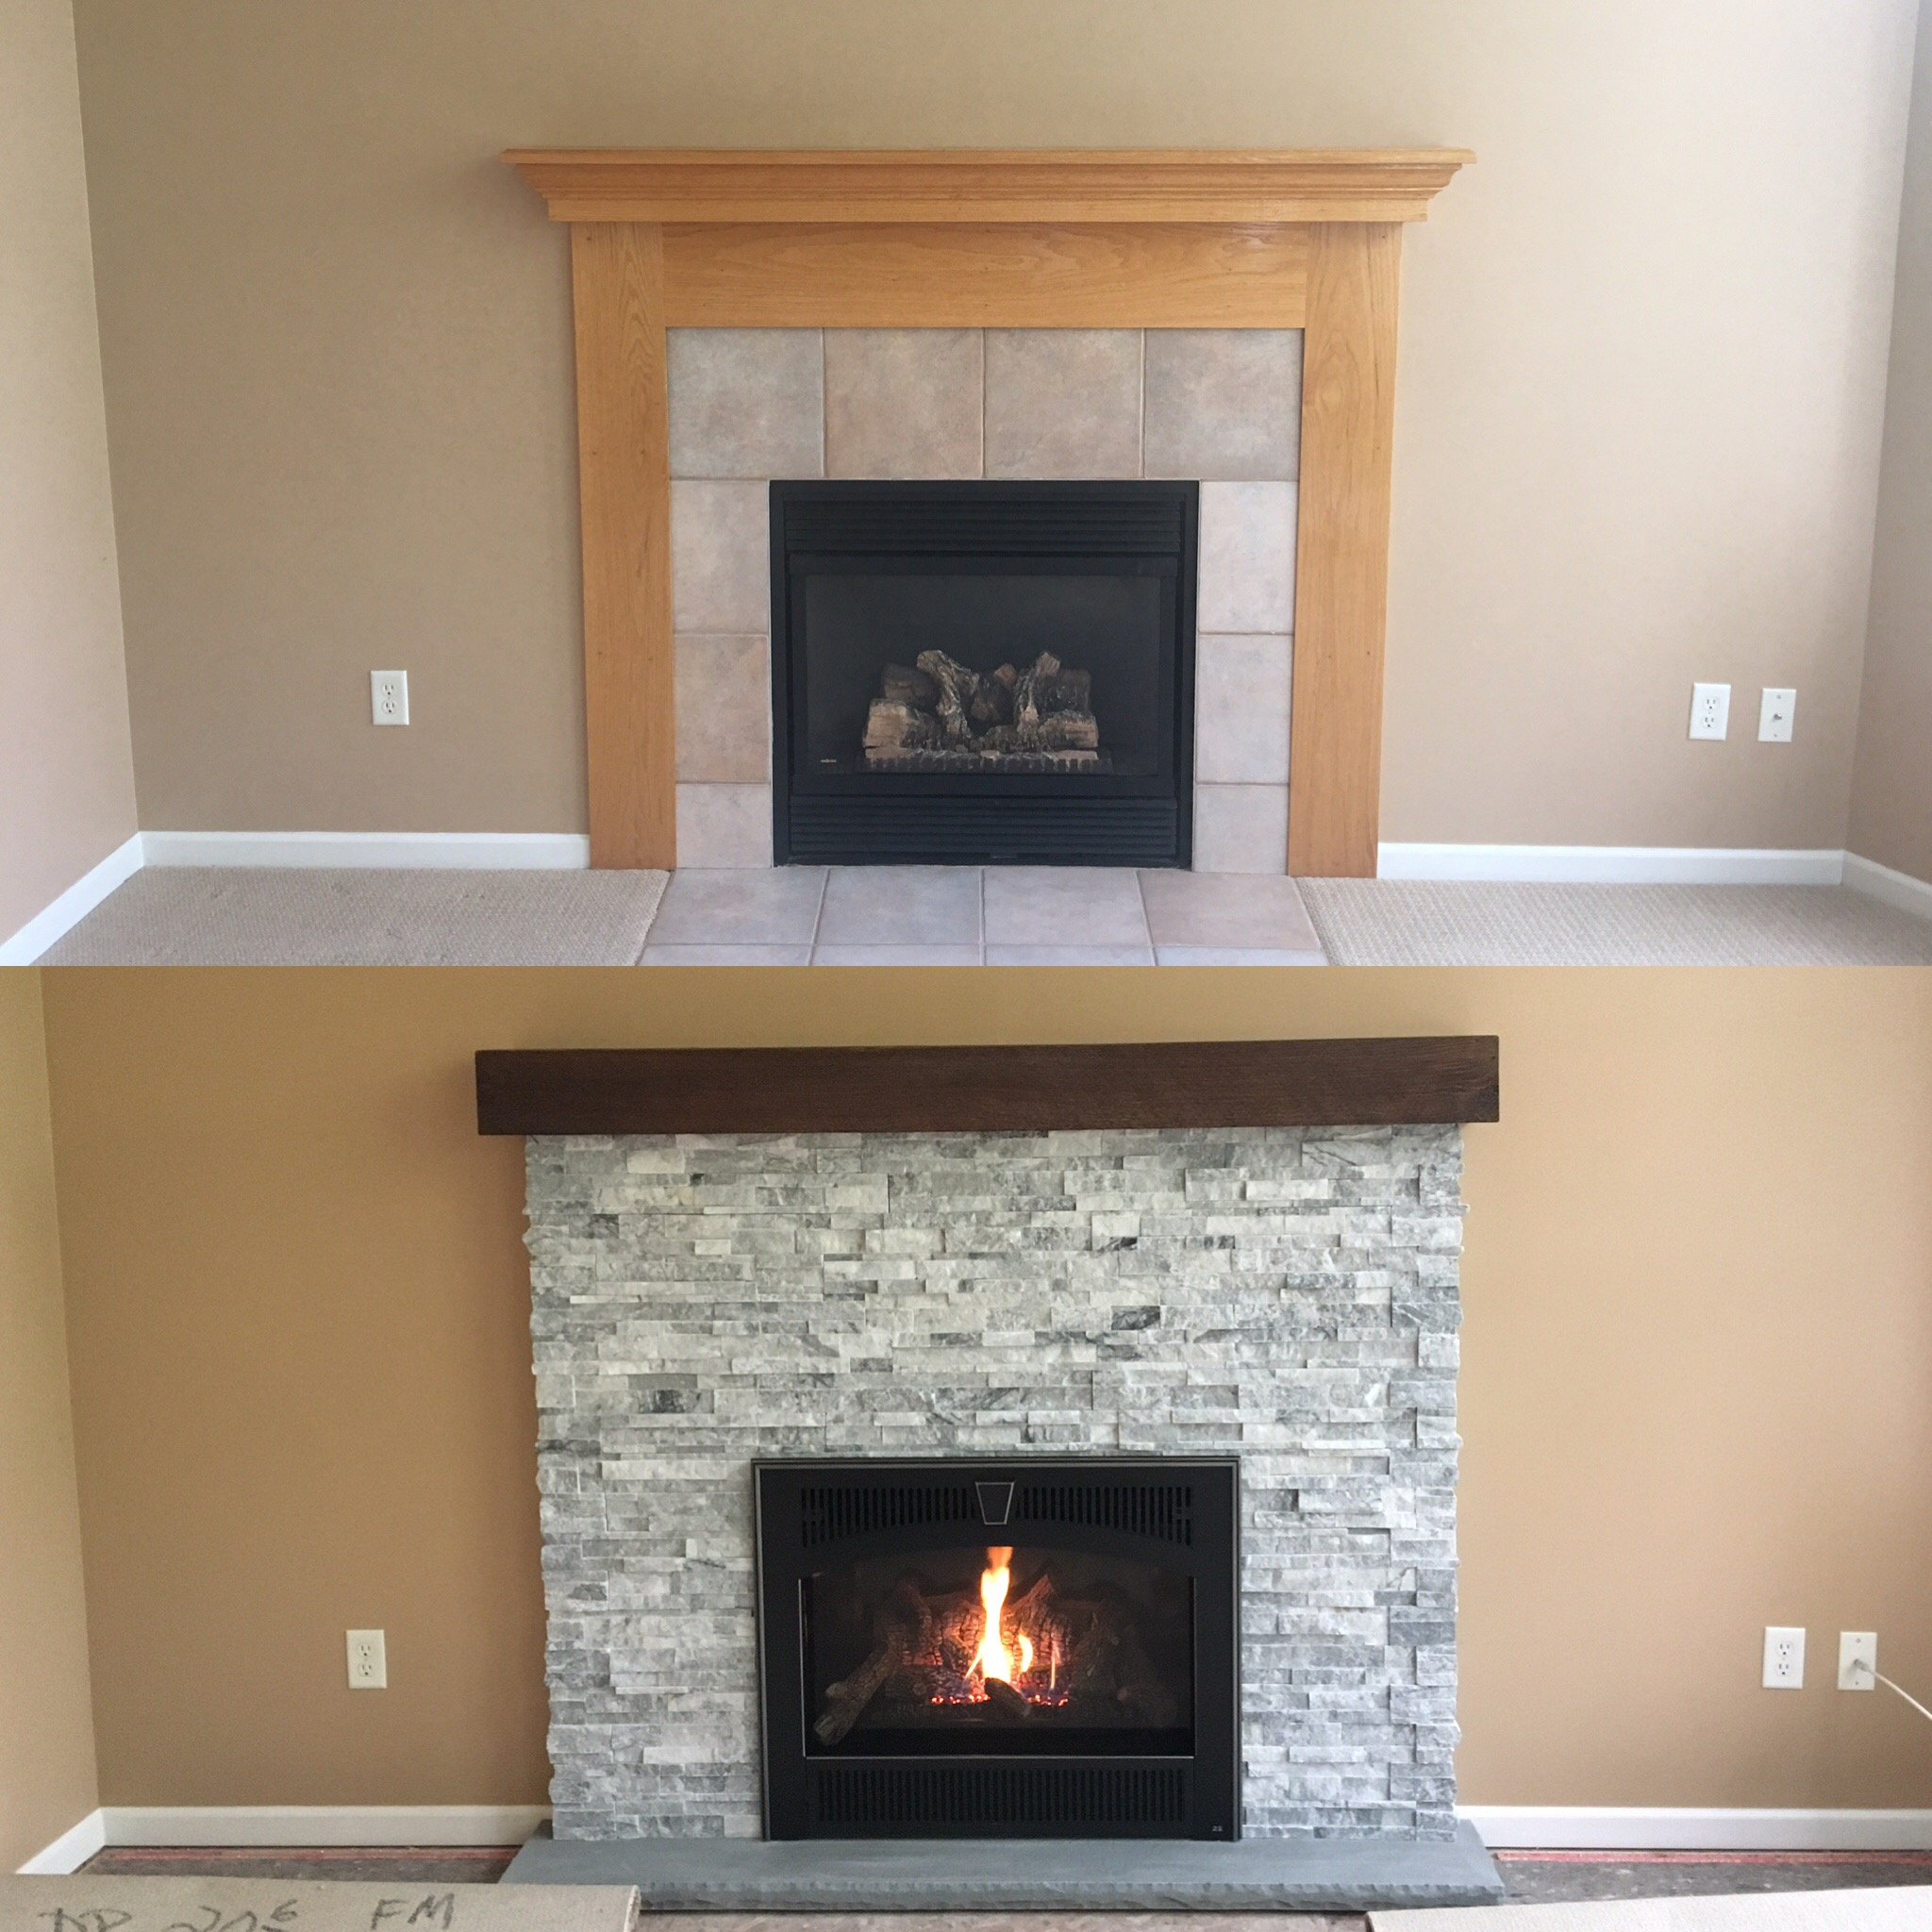 Image of a traditional 564 HighOutput gas fireplace by Fireplace X featuring traditional tile facing and mantle.